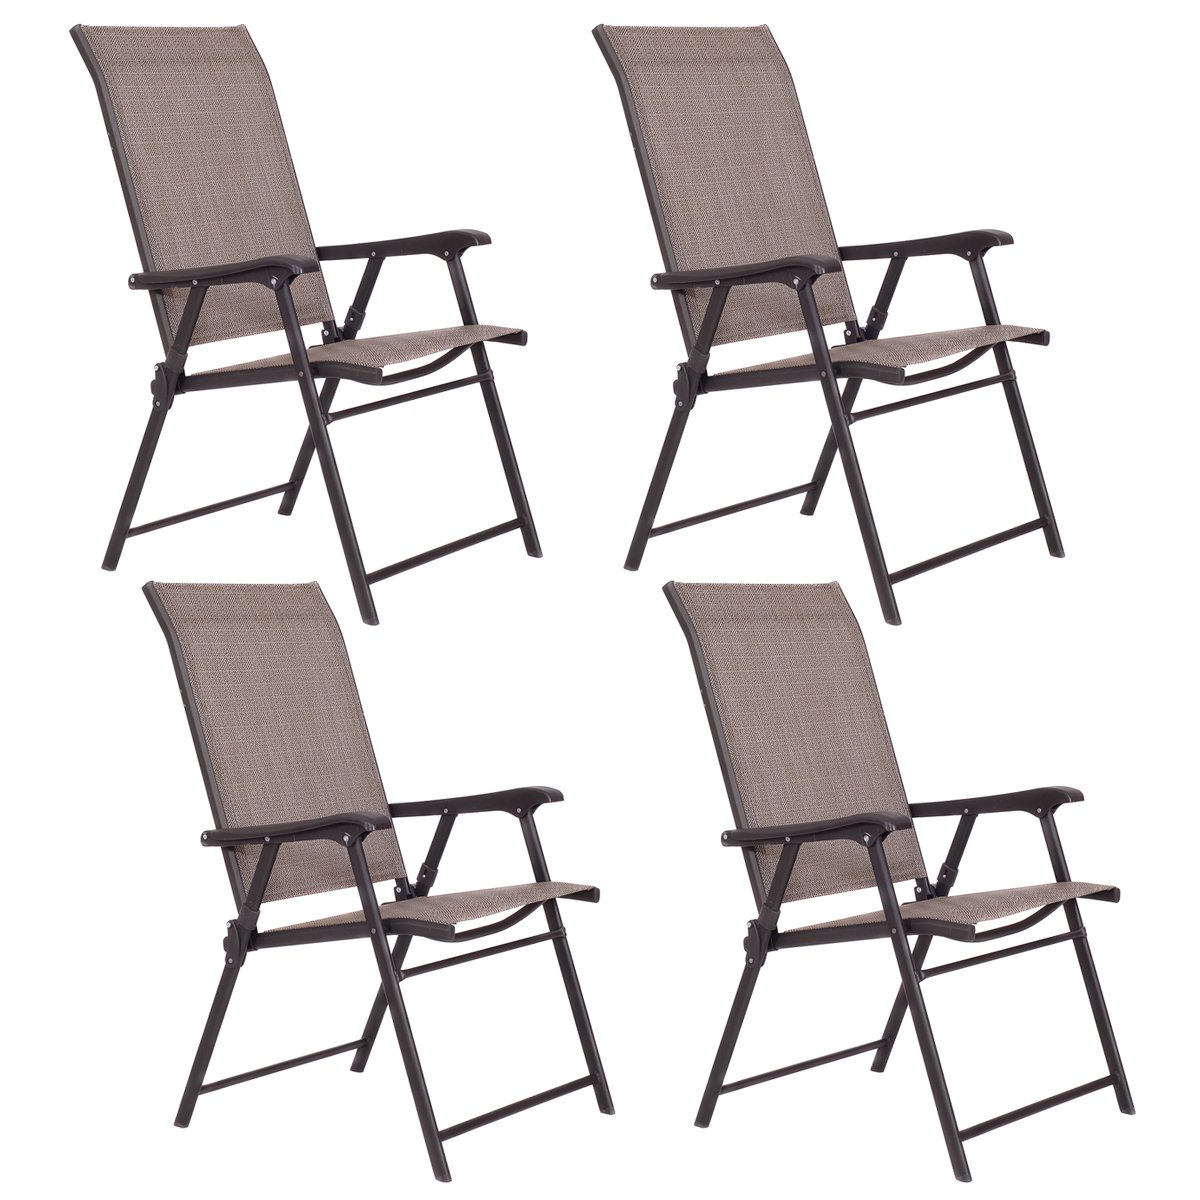 Giantex Outdoor Patio Folding Chairs Furniture Camping Deck Garden Pool Beach Set of 4